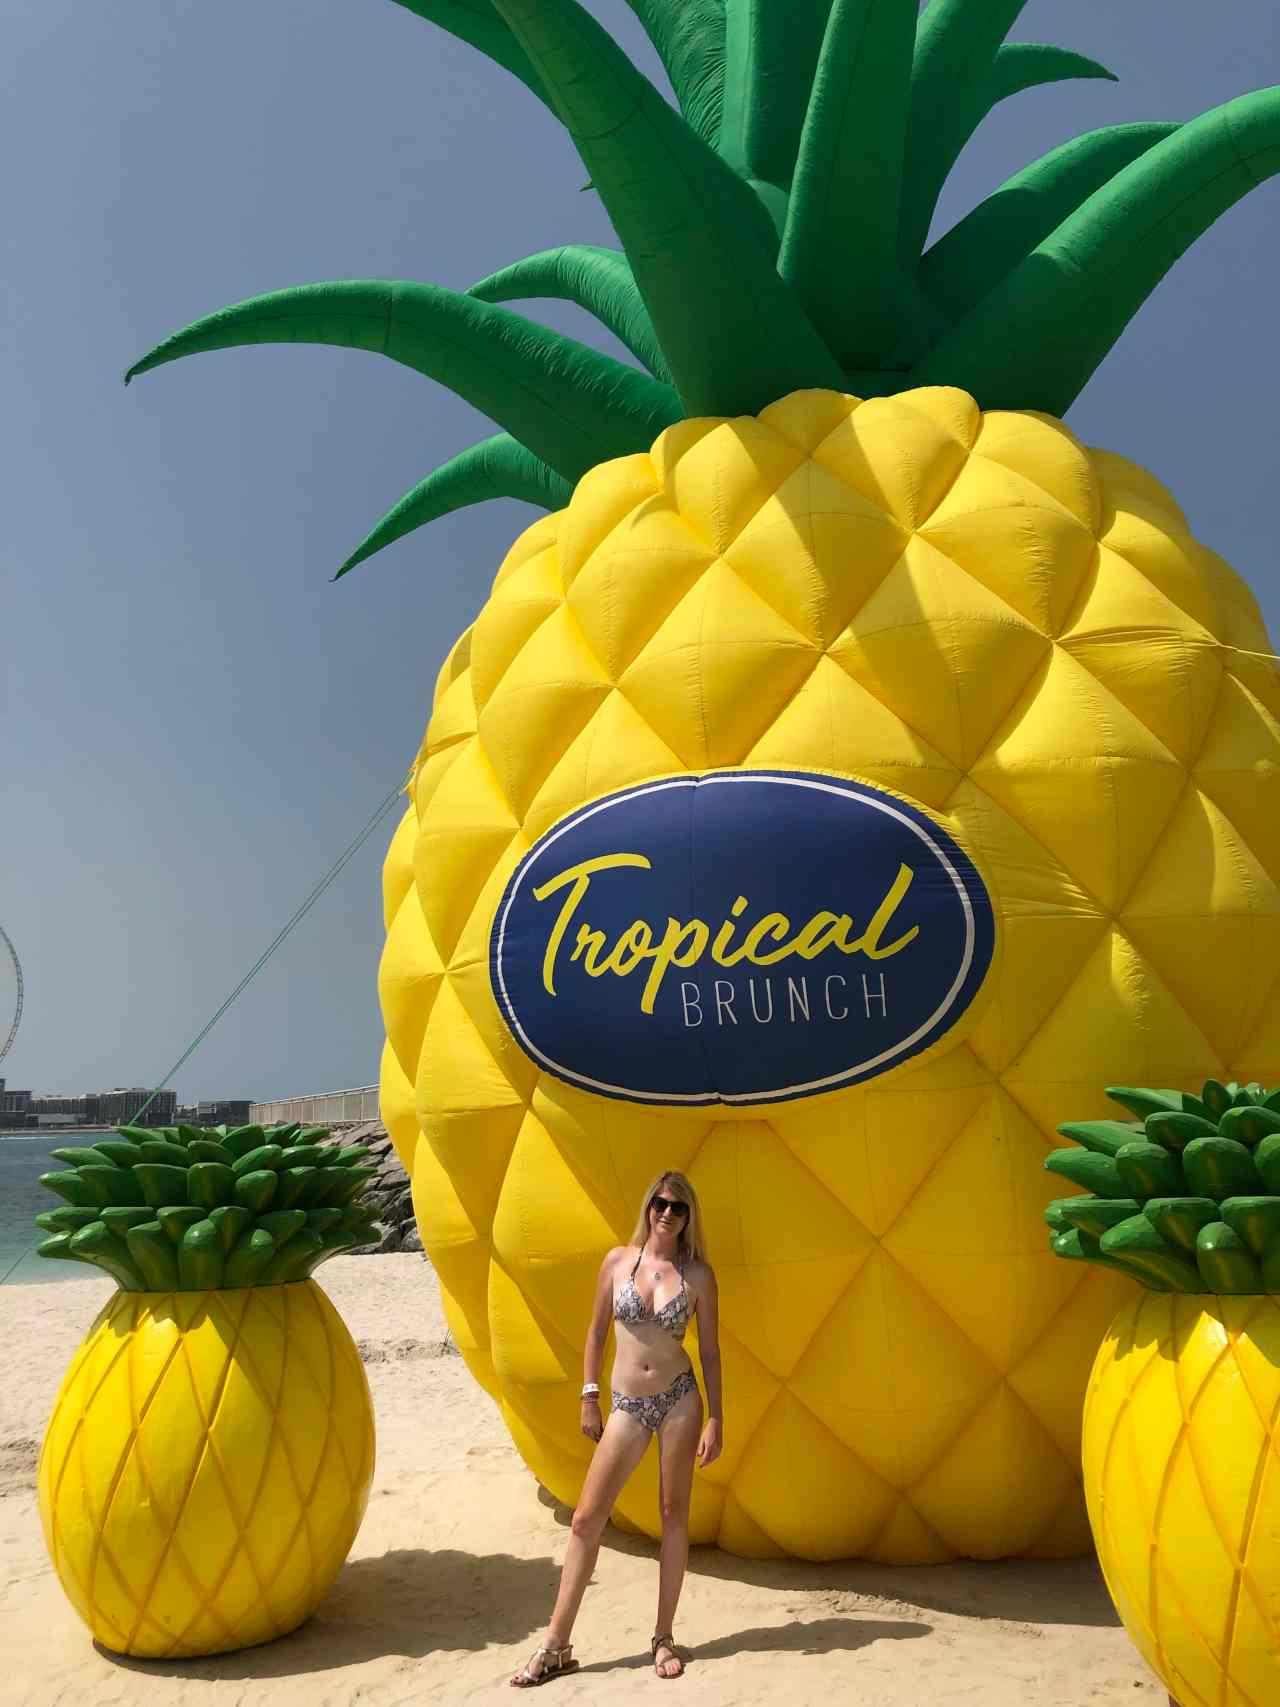 Giant pineapples at zero gravity Dubai